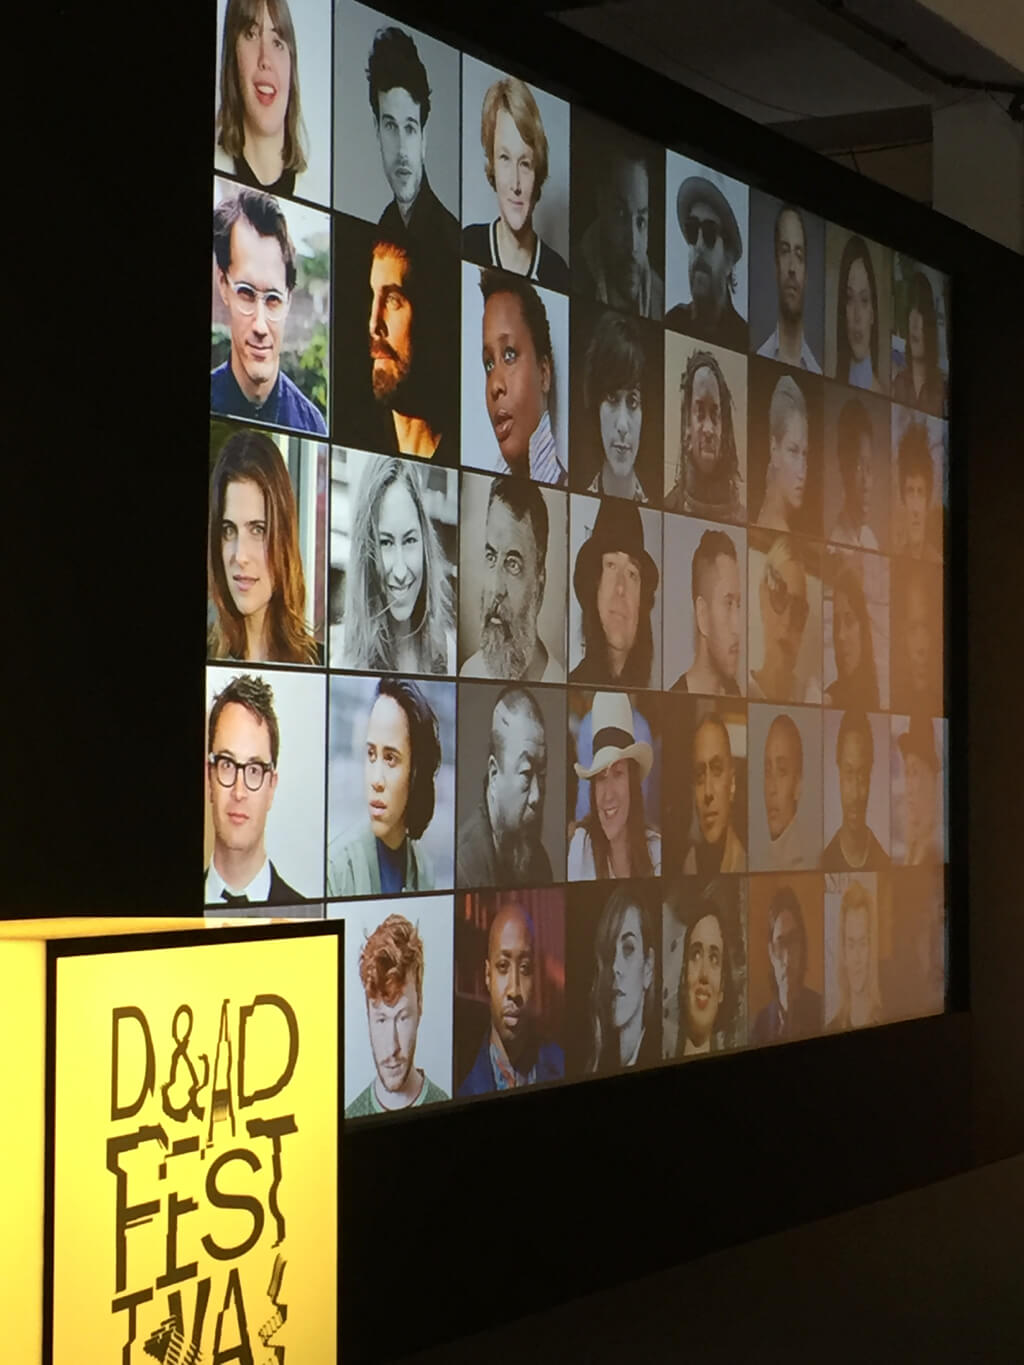 D&AD Festival 2017 stand showing the logo and images from Nowness presentation